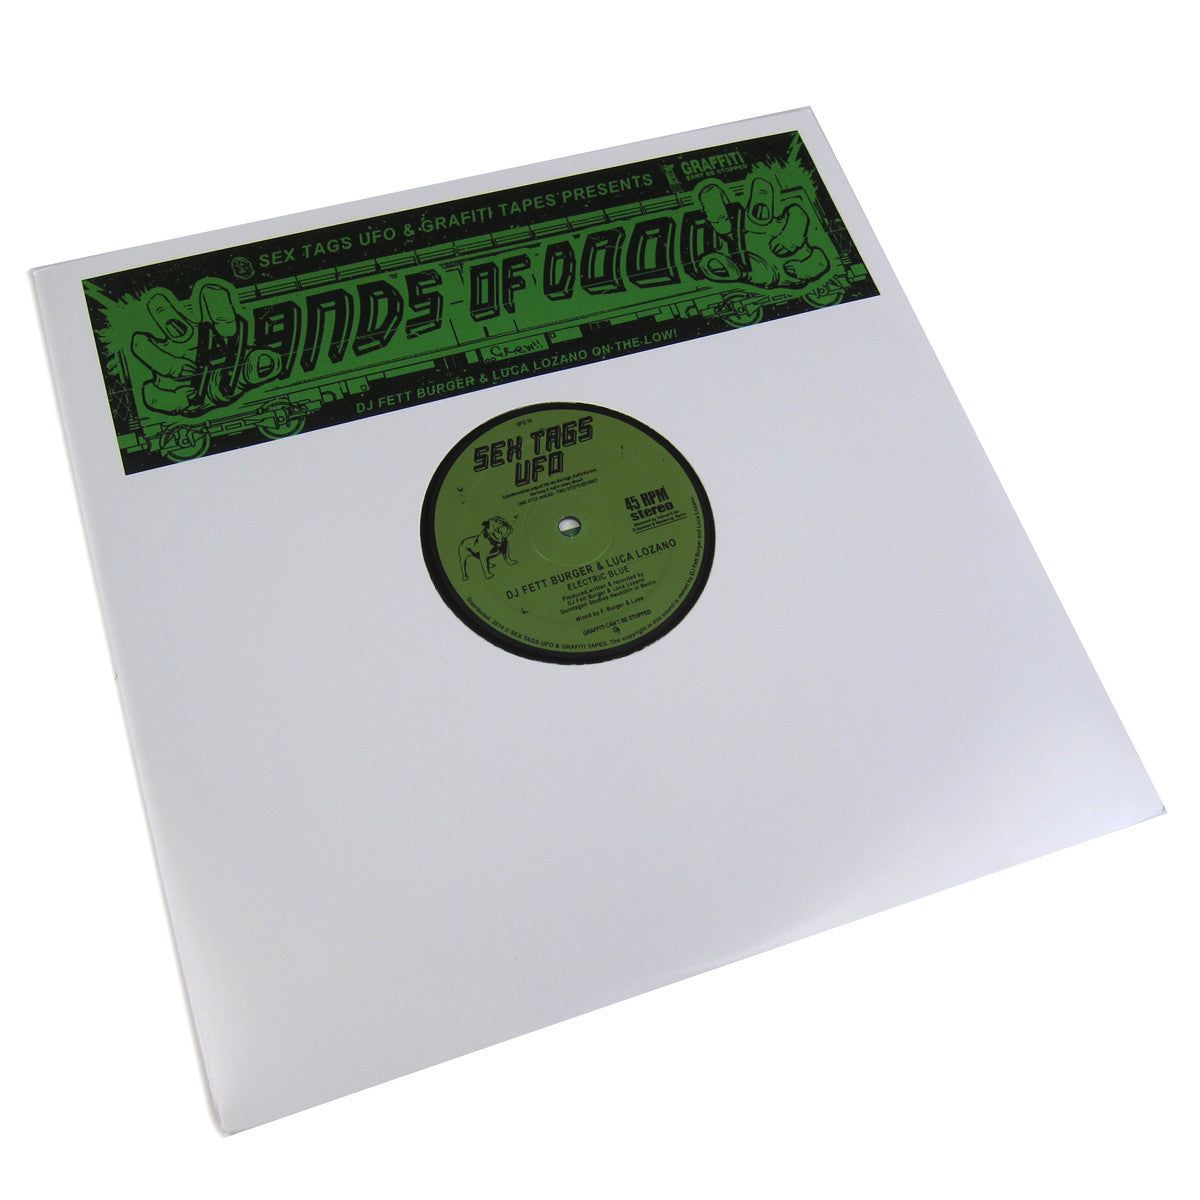 DJ Fett Burger & Luca Lozano: Hands Of Doom Vinyl 12""